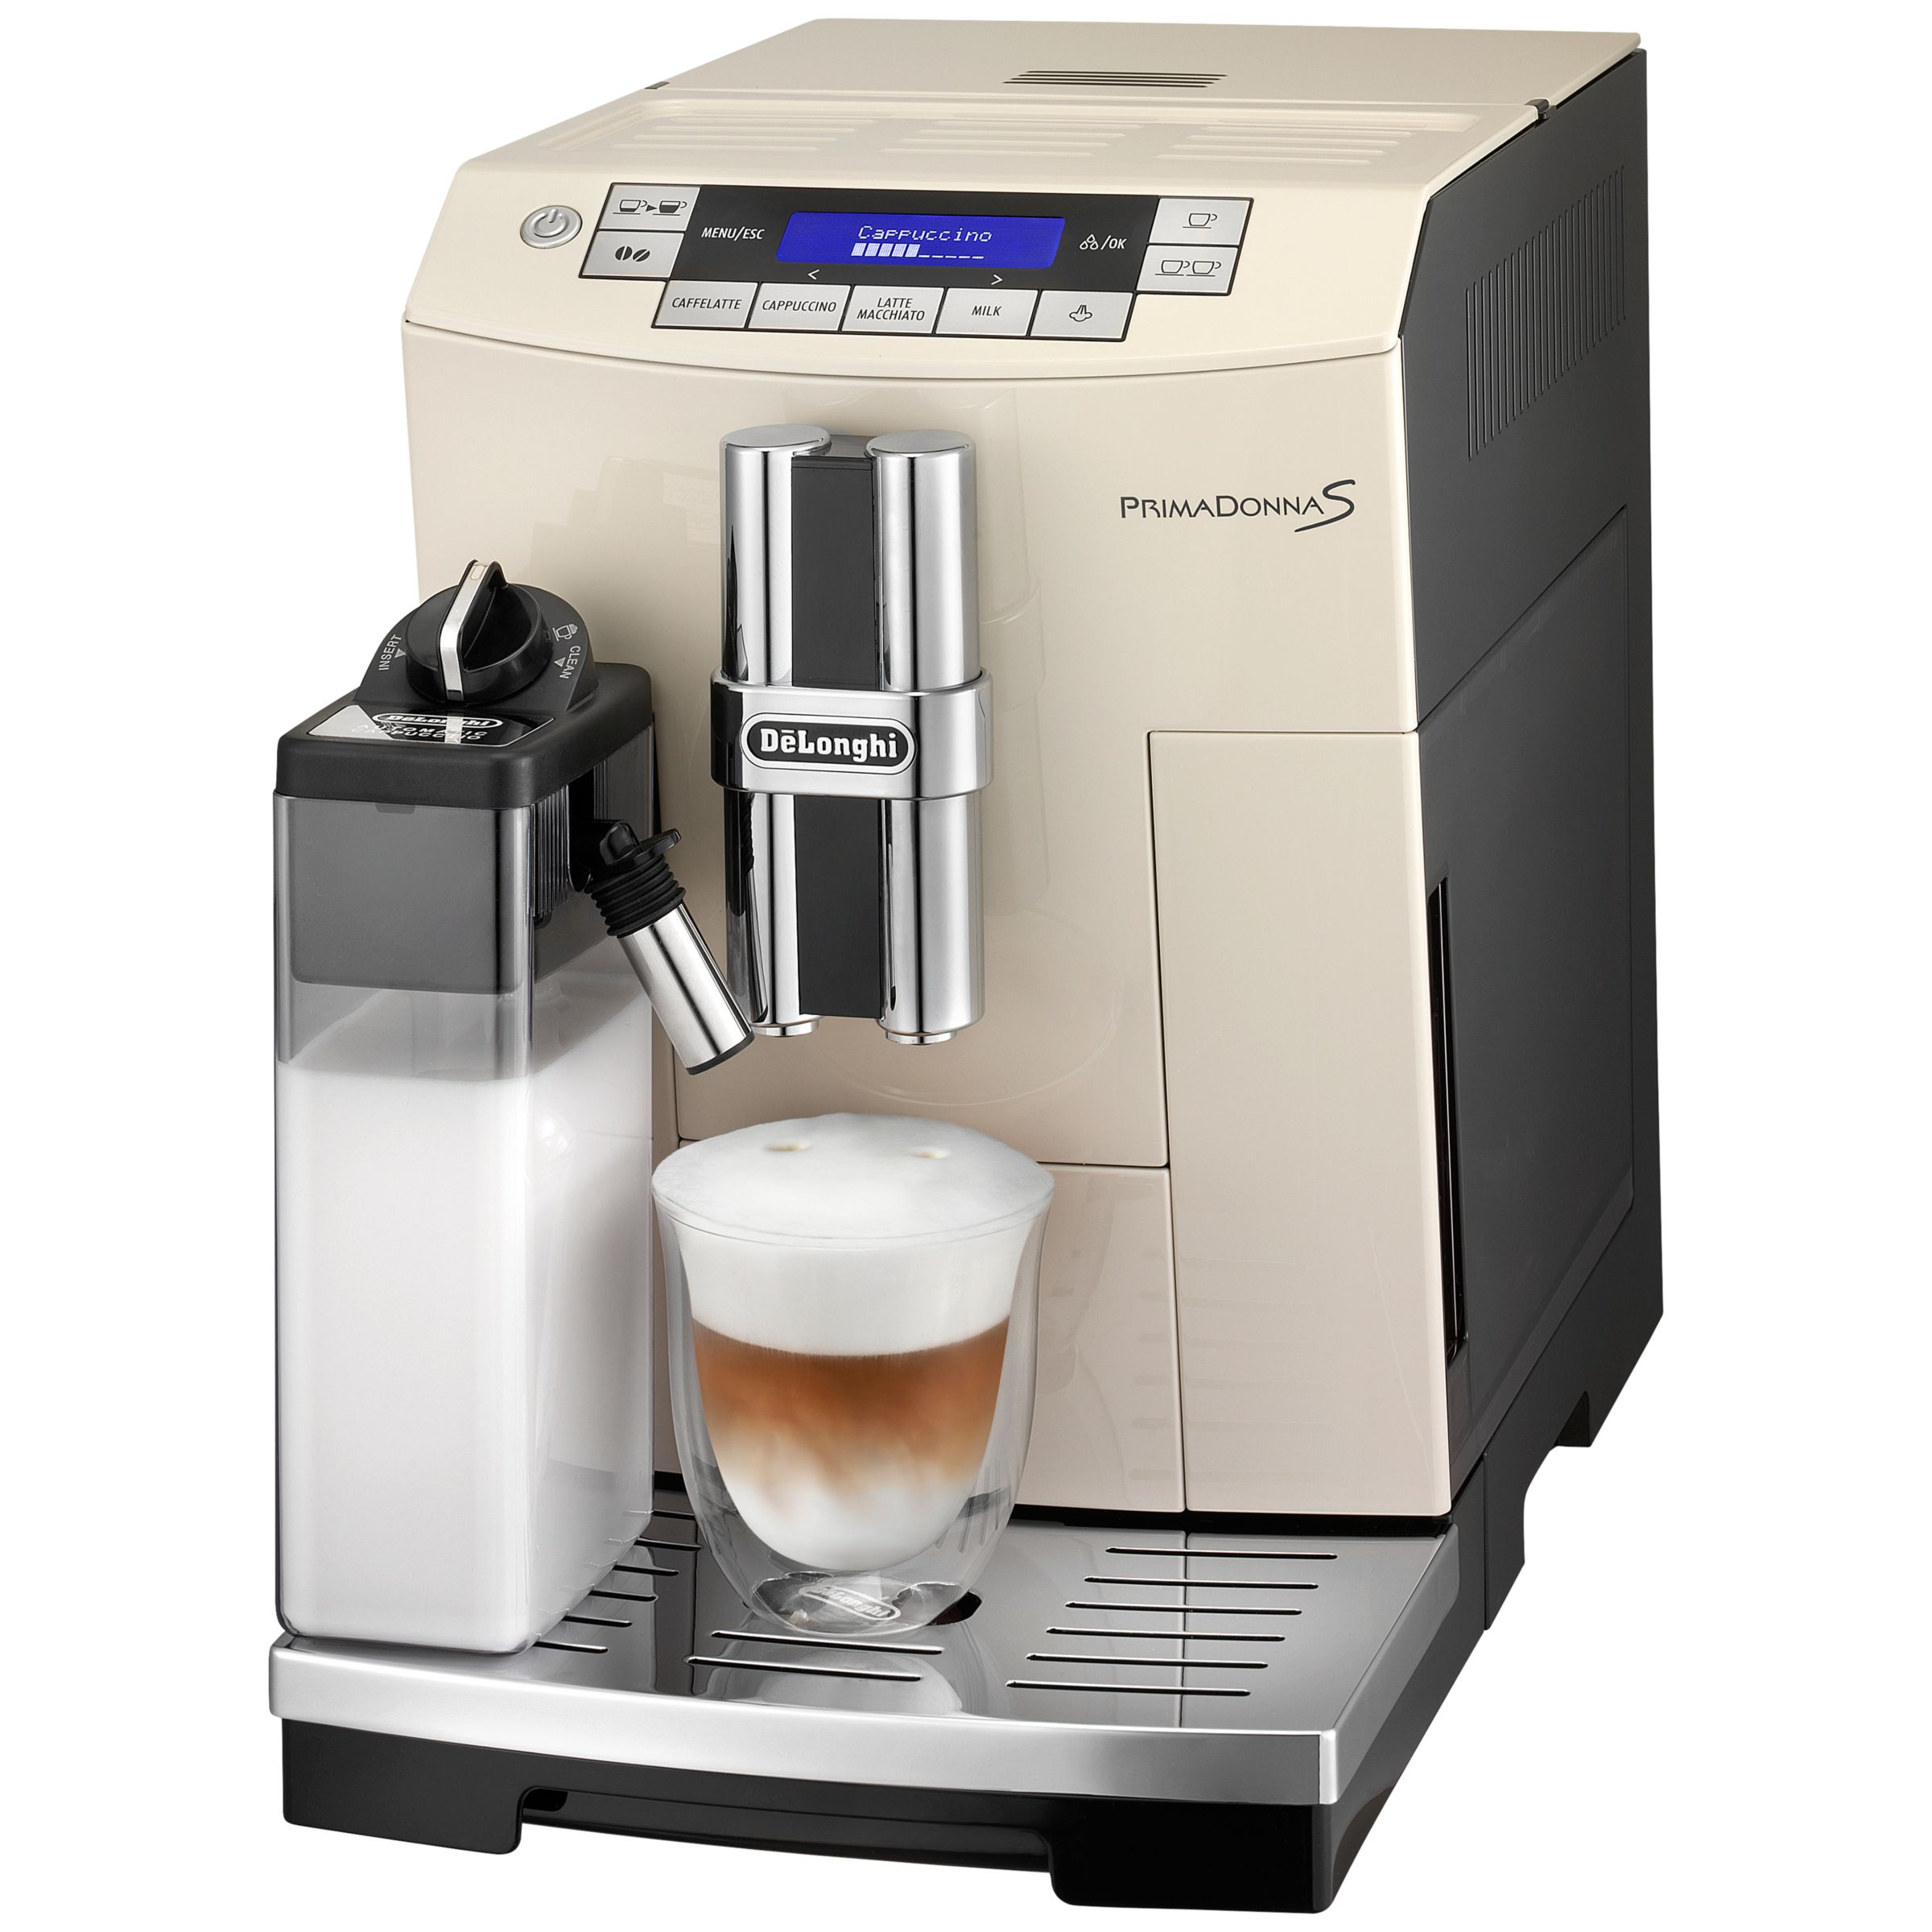 Italian Coffee Maker John Lewis : DeLonghi PrimaDonna ESAM6600 Coffee Maker - Compare Prices at Foundem